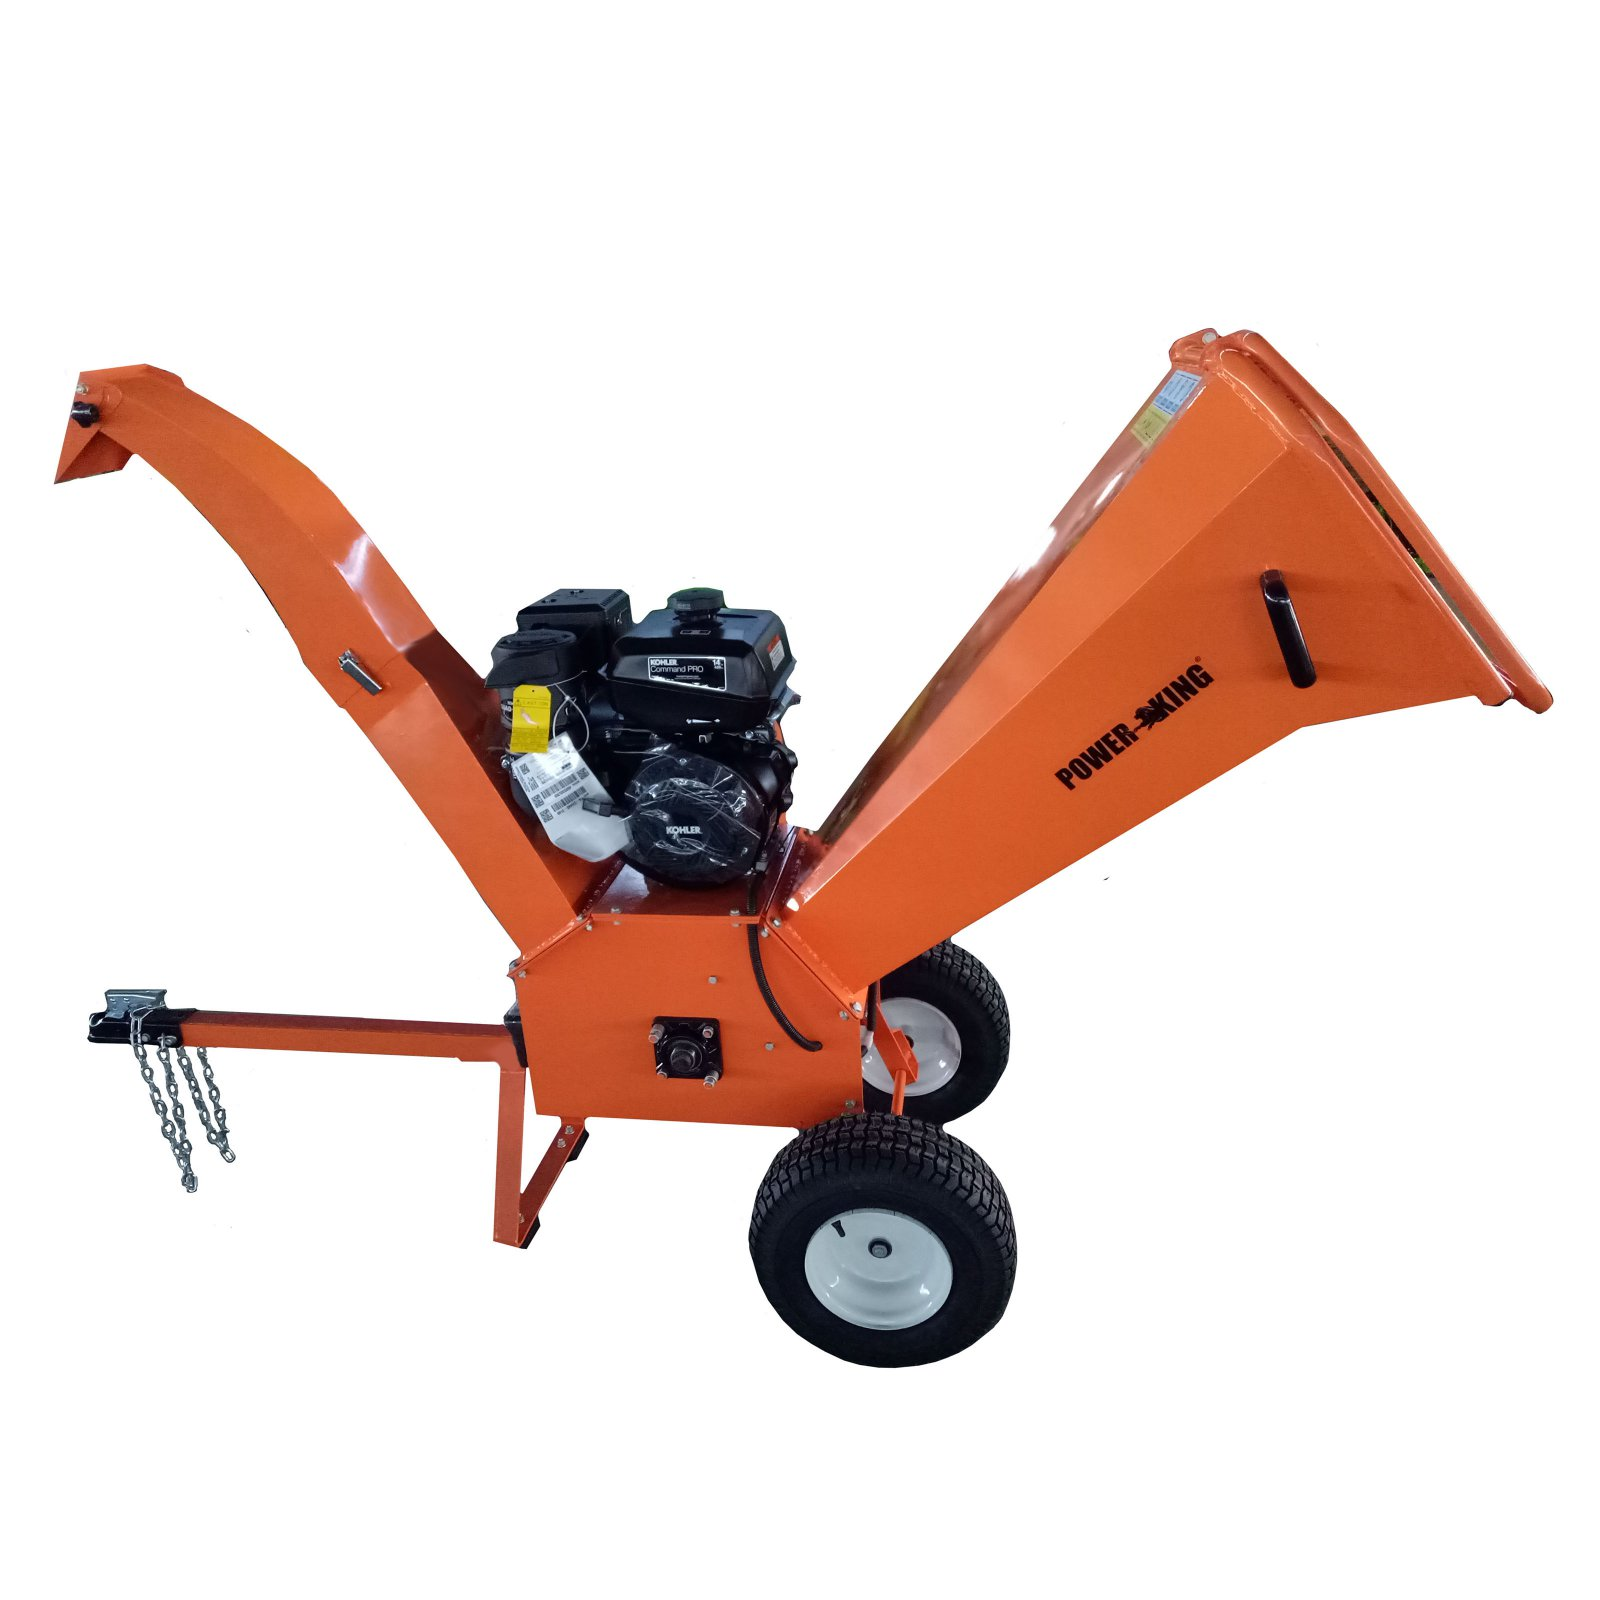 Powerking Chipper with Bow Handle - Walmart.com